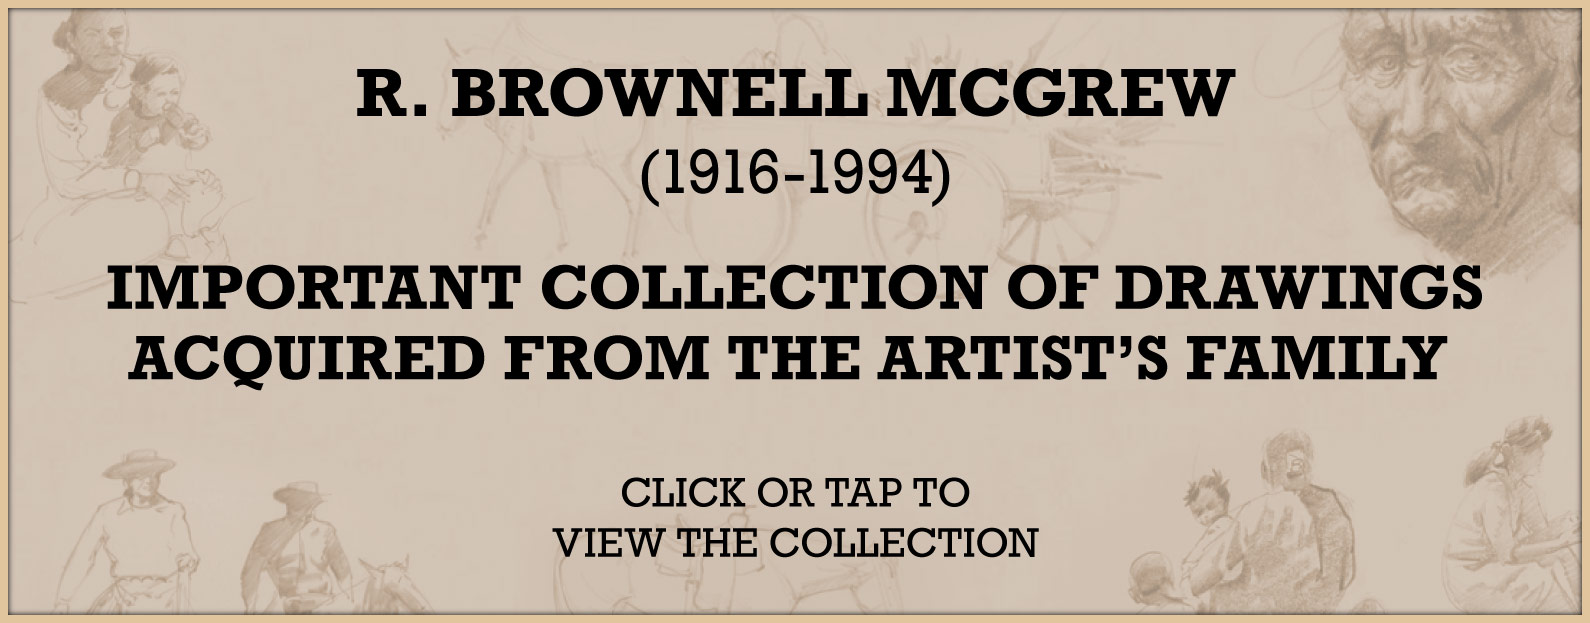 R. Brownell McGrew (1916-1994) Important Collection of Drawings